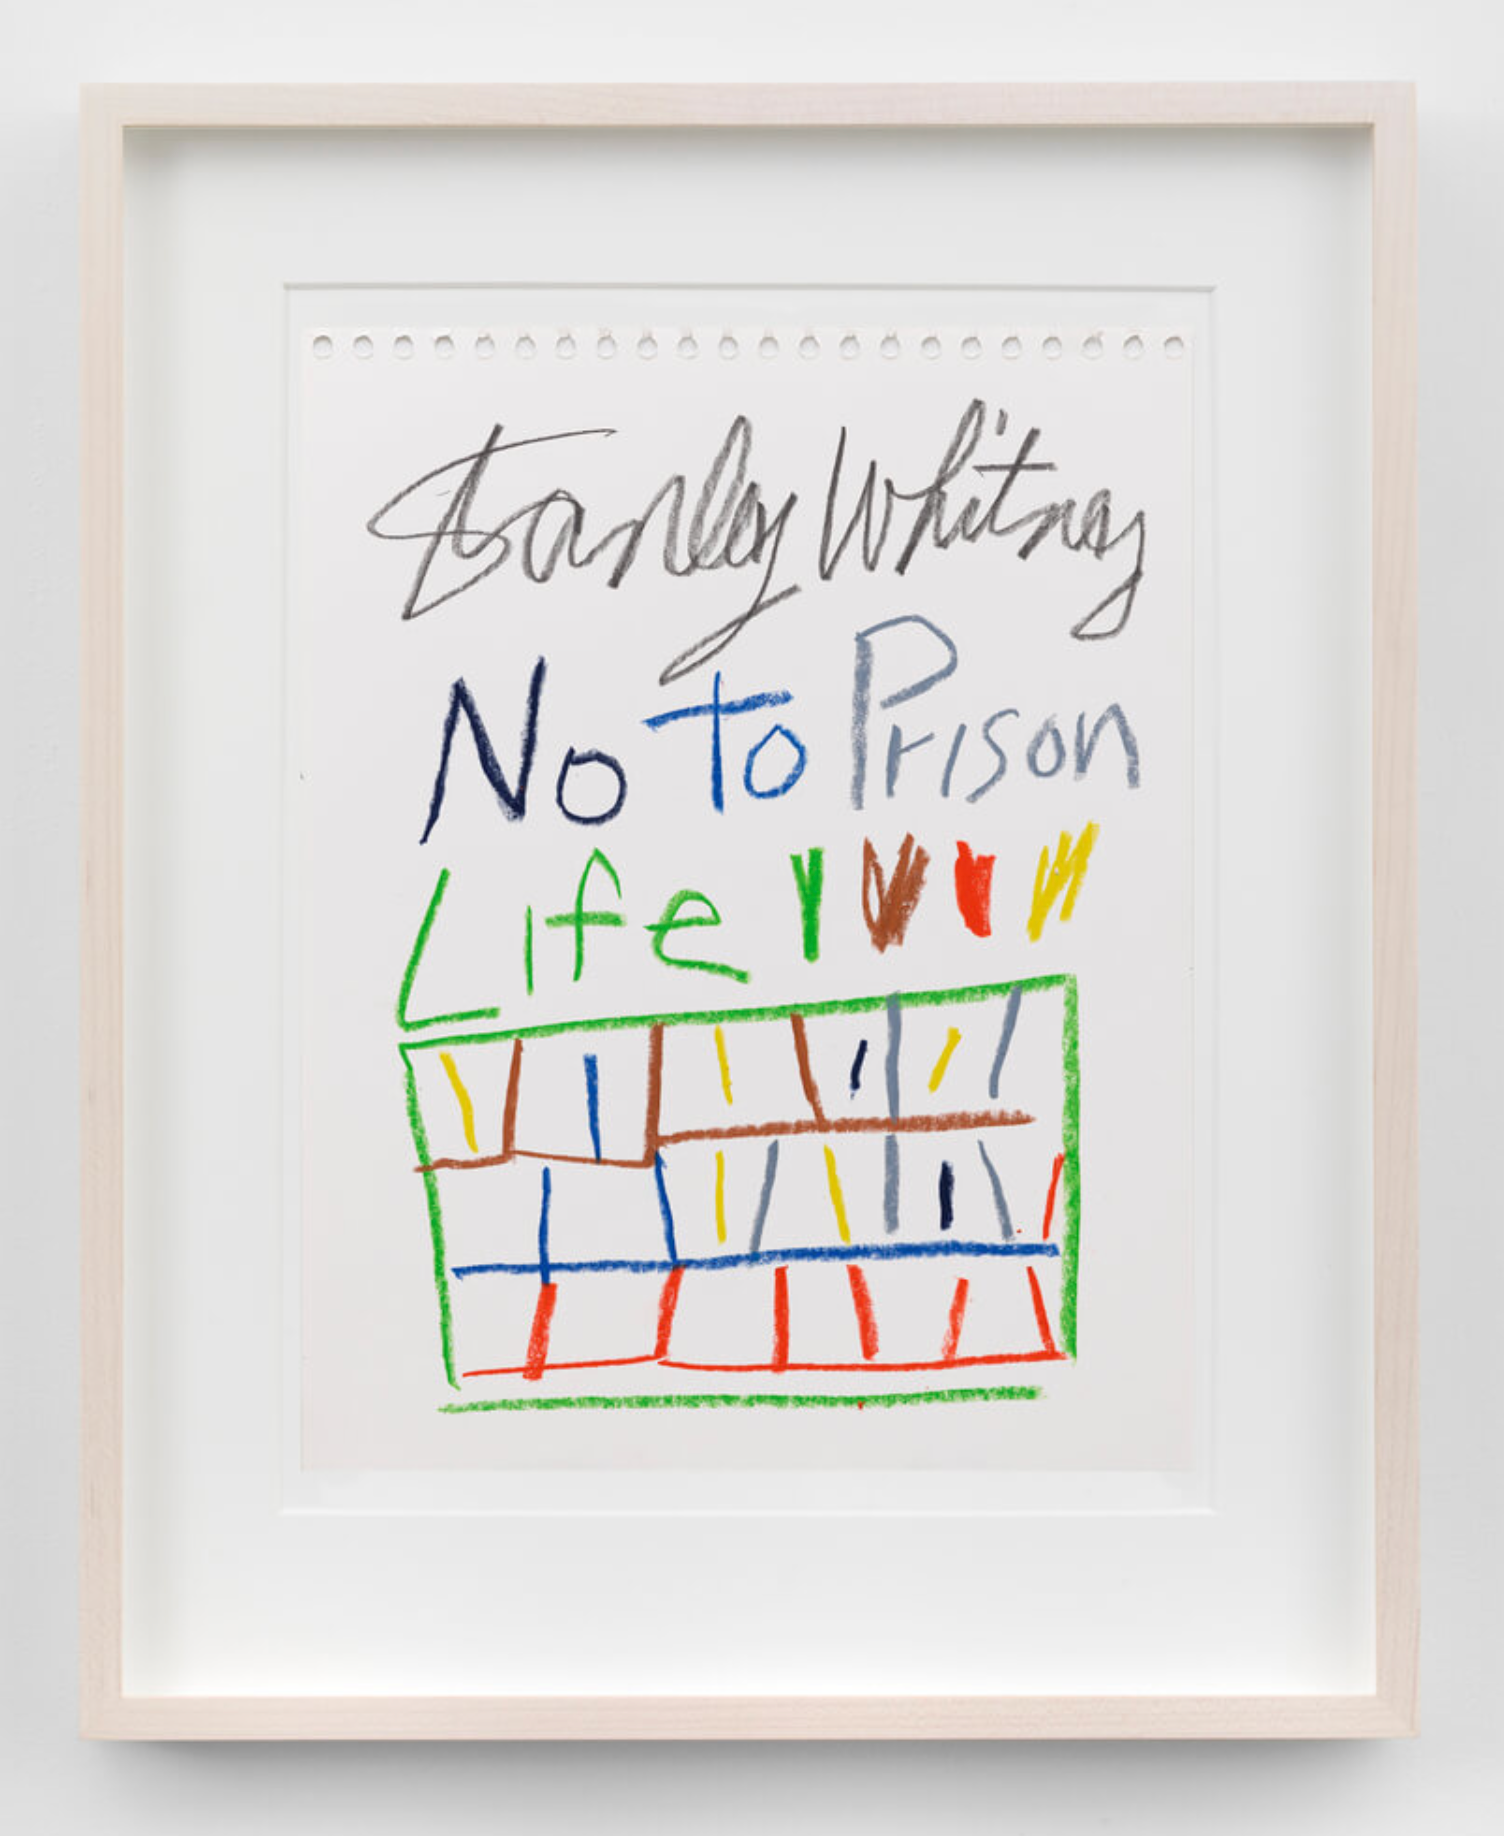 Stanley Whitney, Untitled (No to Prison Life), 2020